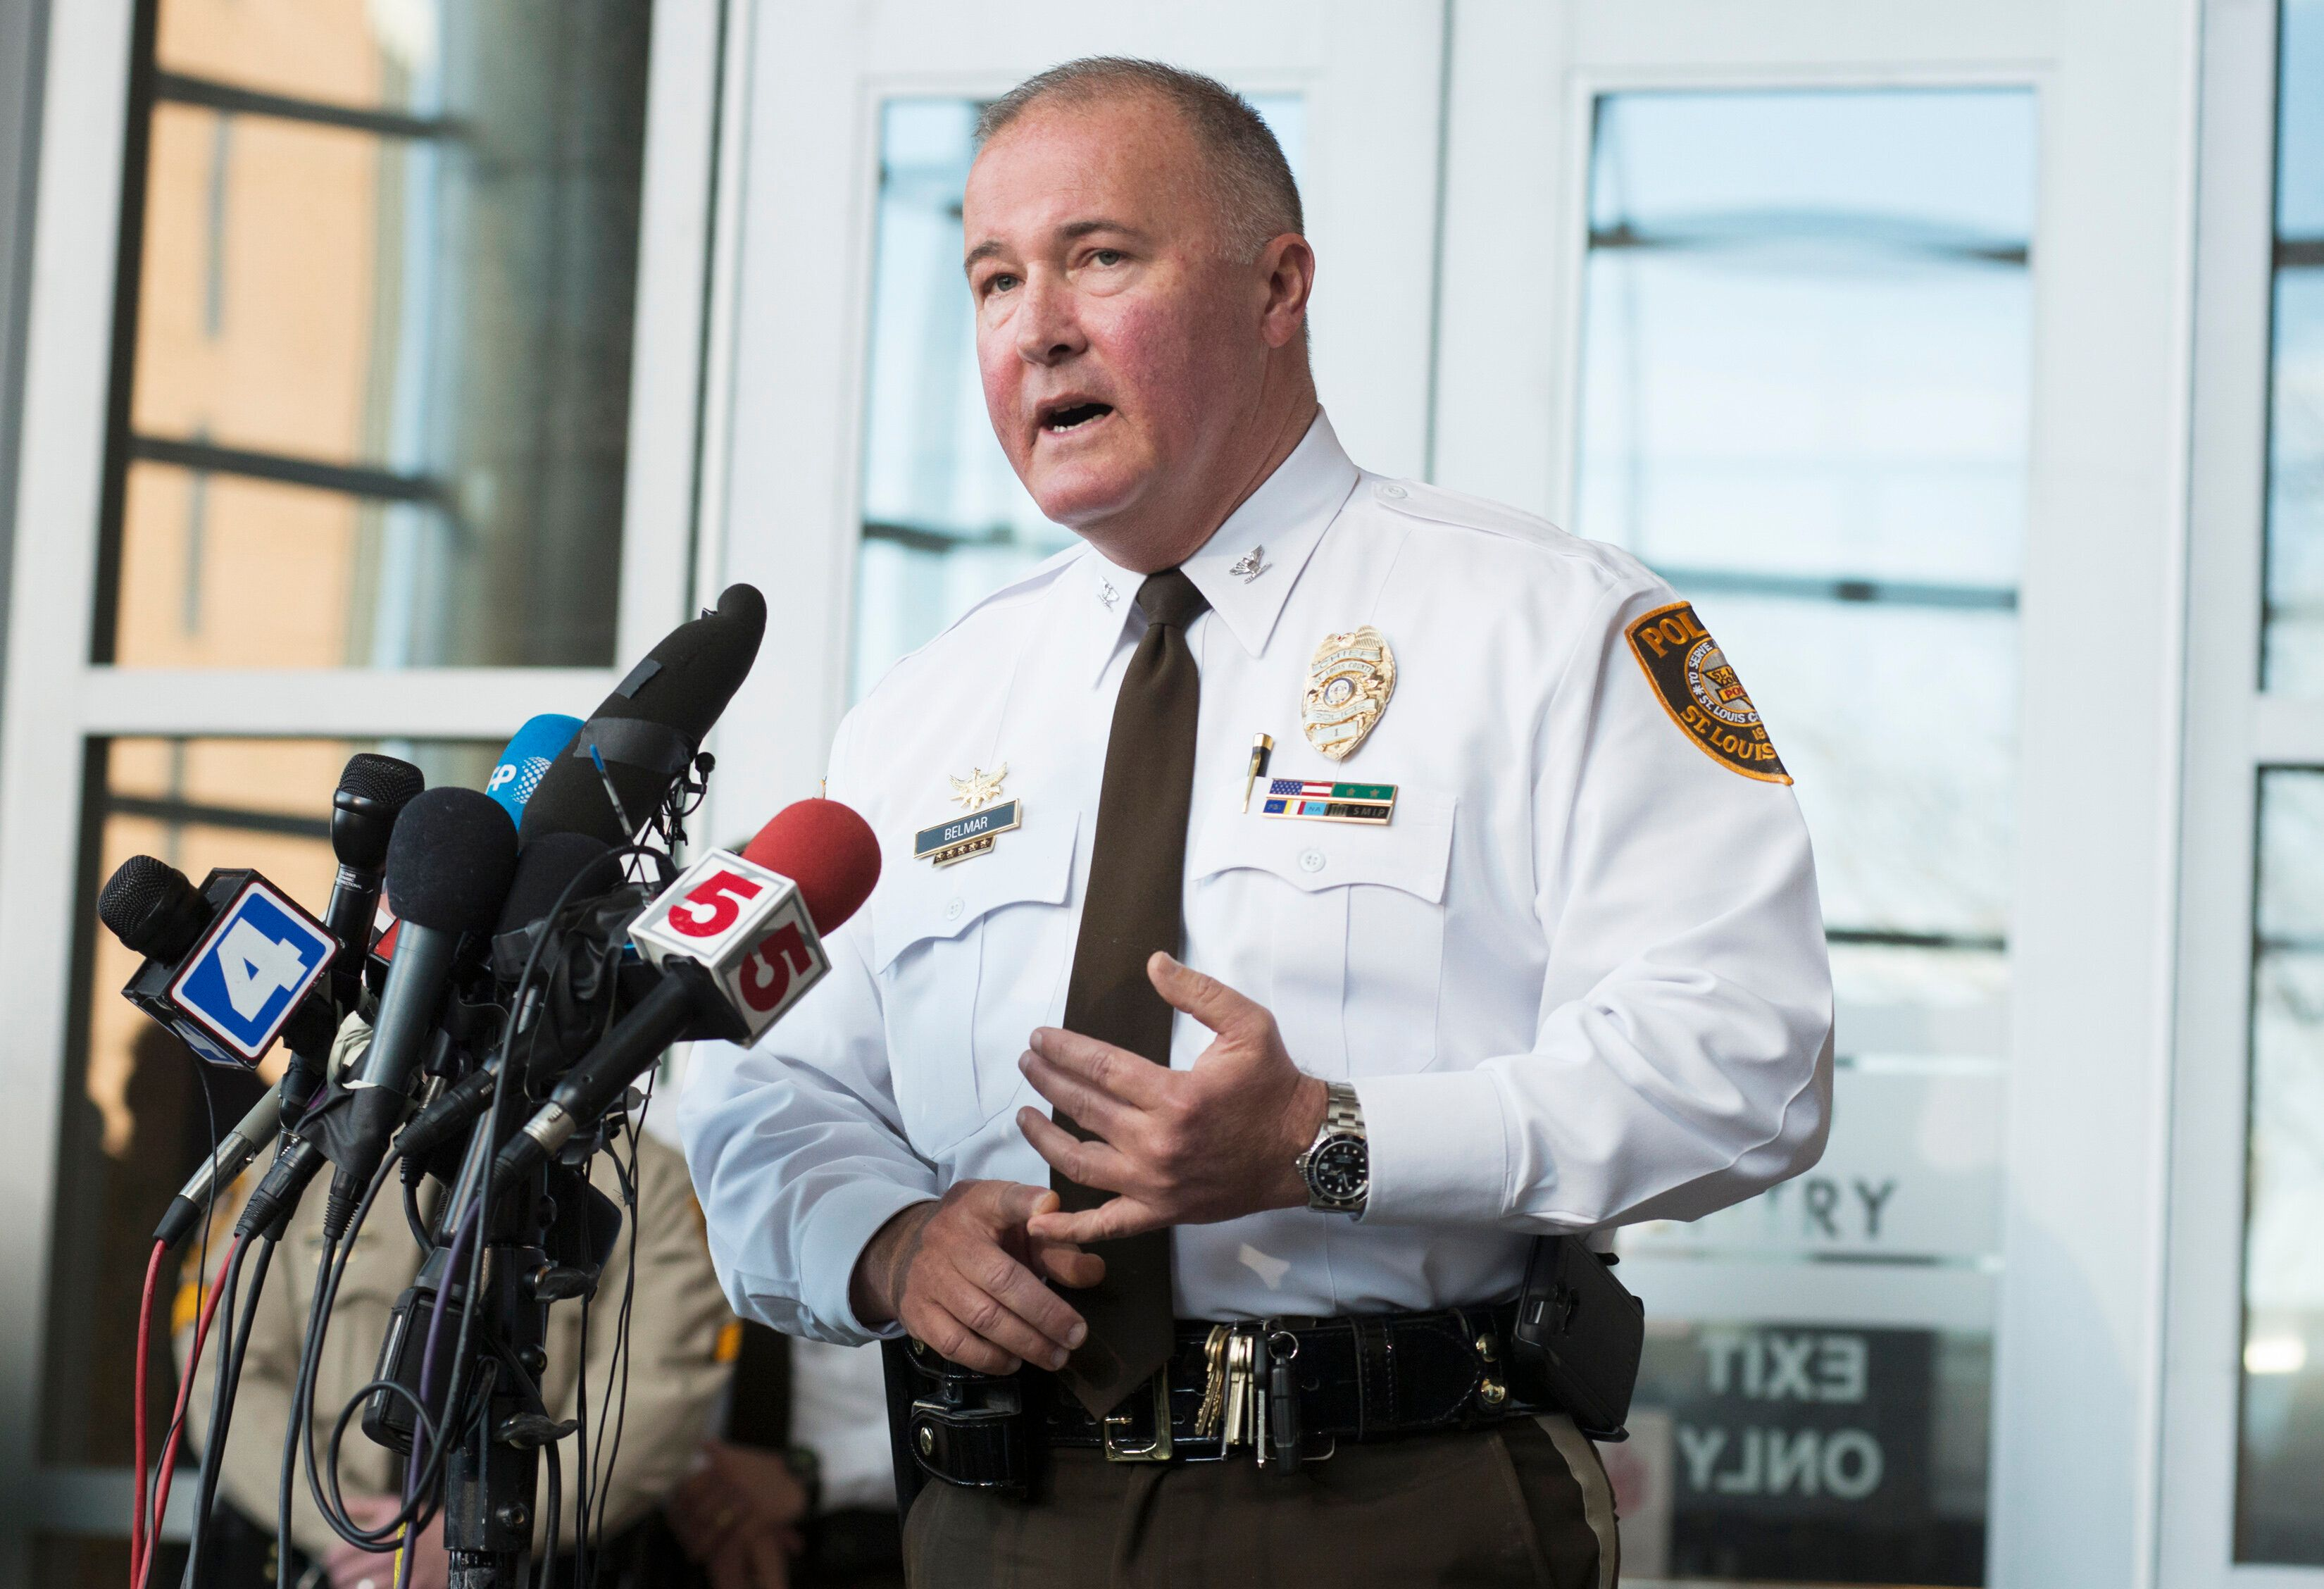 St. Louis County Police Chief Jon Belmar, seen in 2015, is facing calls to step down following allegations of homophobia with